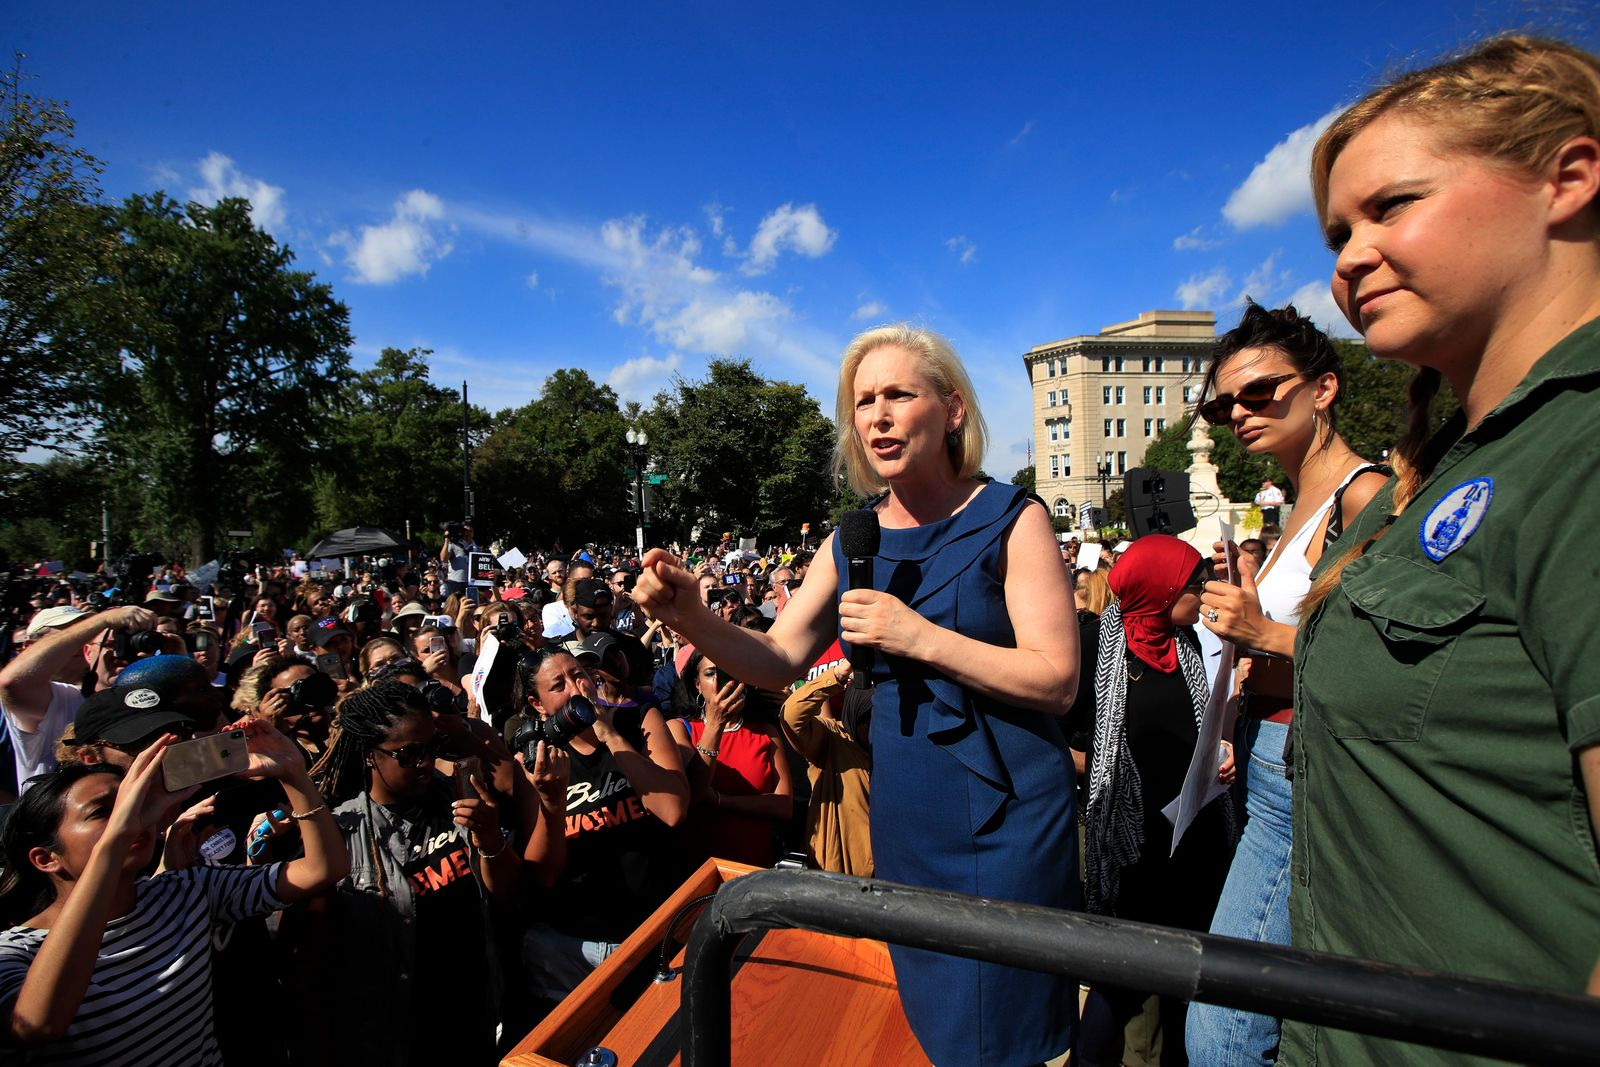 Sen. Kirsten Gillibrand, D-N.Y., with actress and comedian Amy Schumer, right, and actress model Emily Ratajkowski, center, speaks at a rally against Supreme Court nominee Brett Kavanaugh at the Supreme Court in Washington, Thursday, Oct. 4, 2018. (AP Photo/Manuel Balce Ceneta)